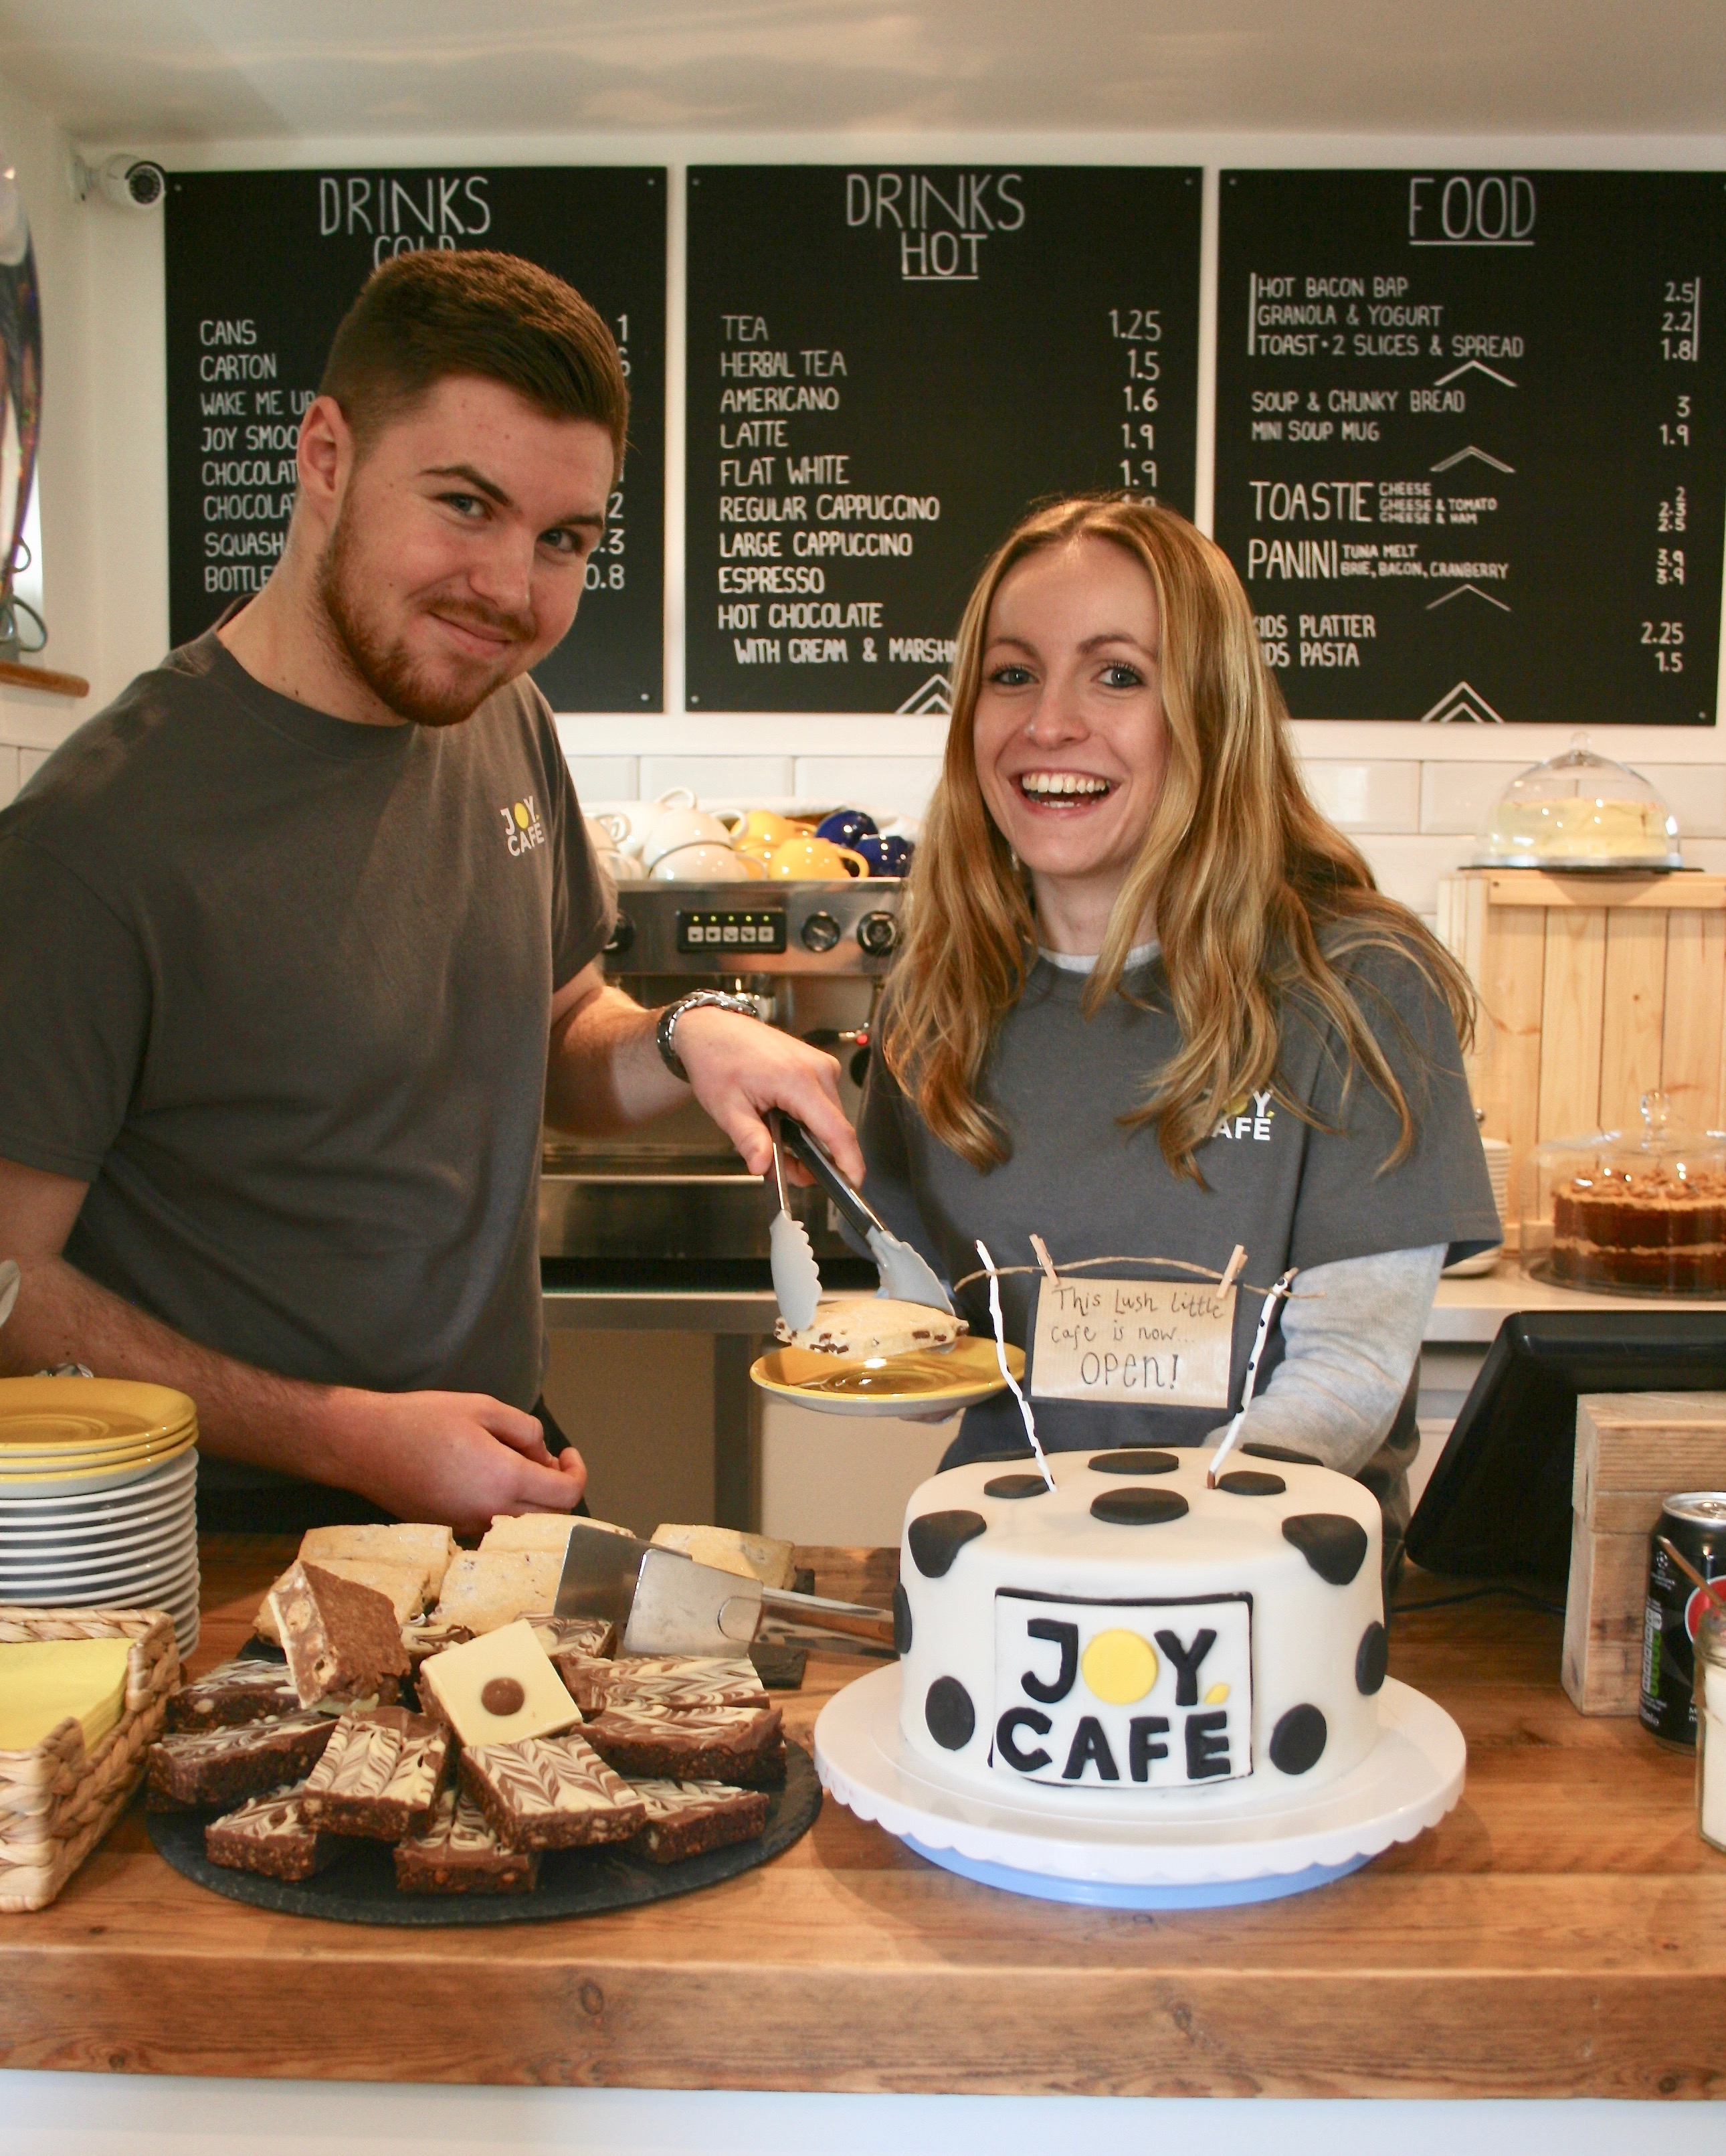 Review of Joy Cafe in Boscombe